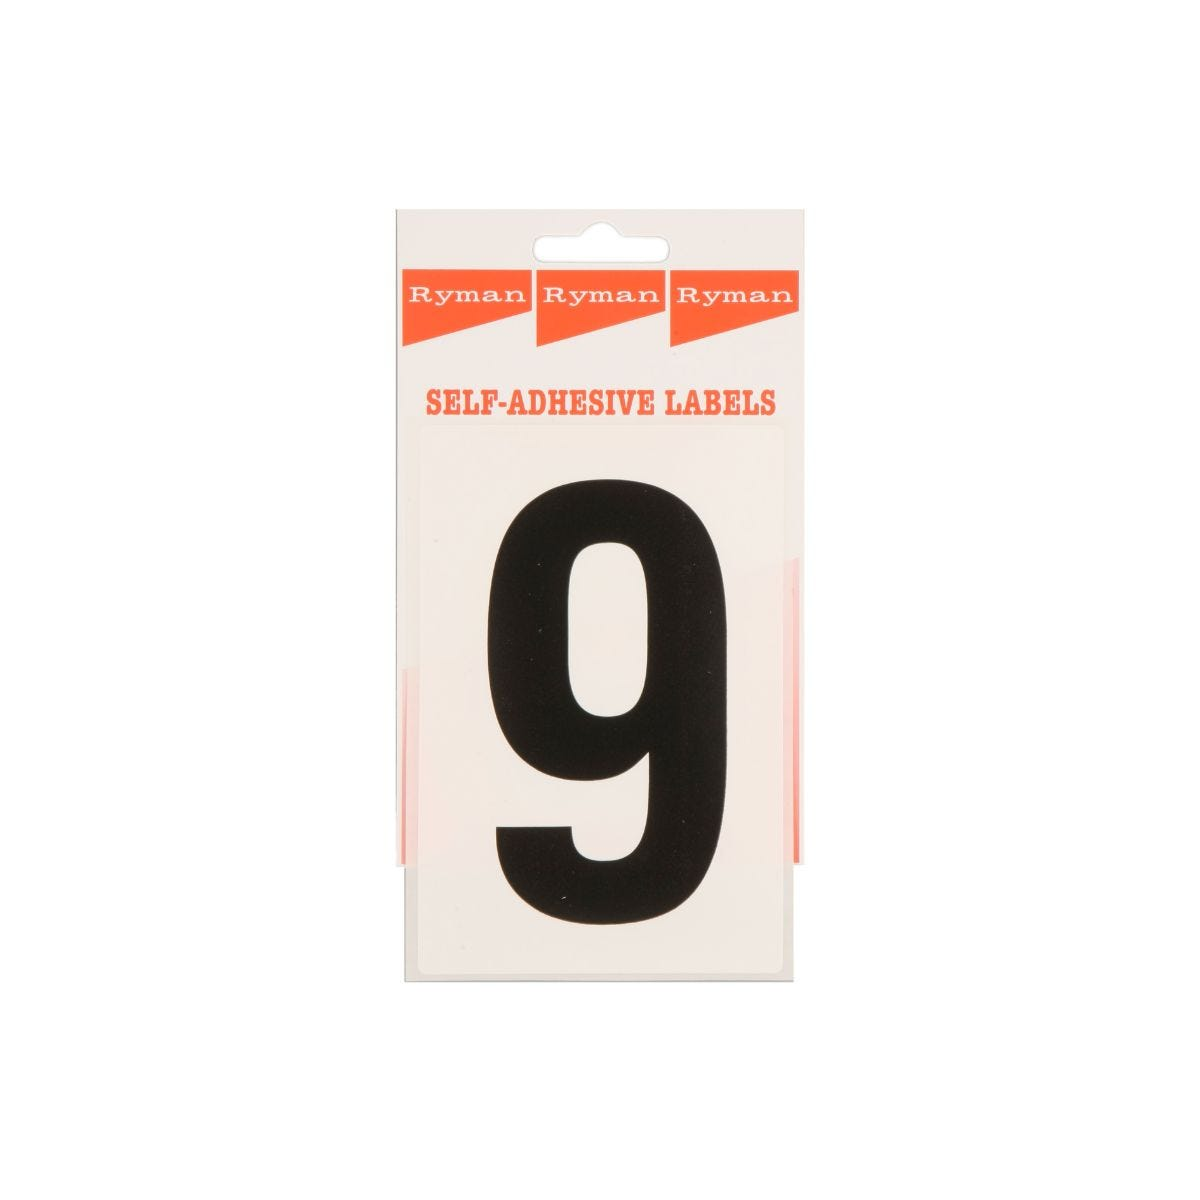 Ryman Self Adhesive Labels Number 9 Single Pack, Black  White